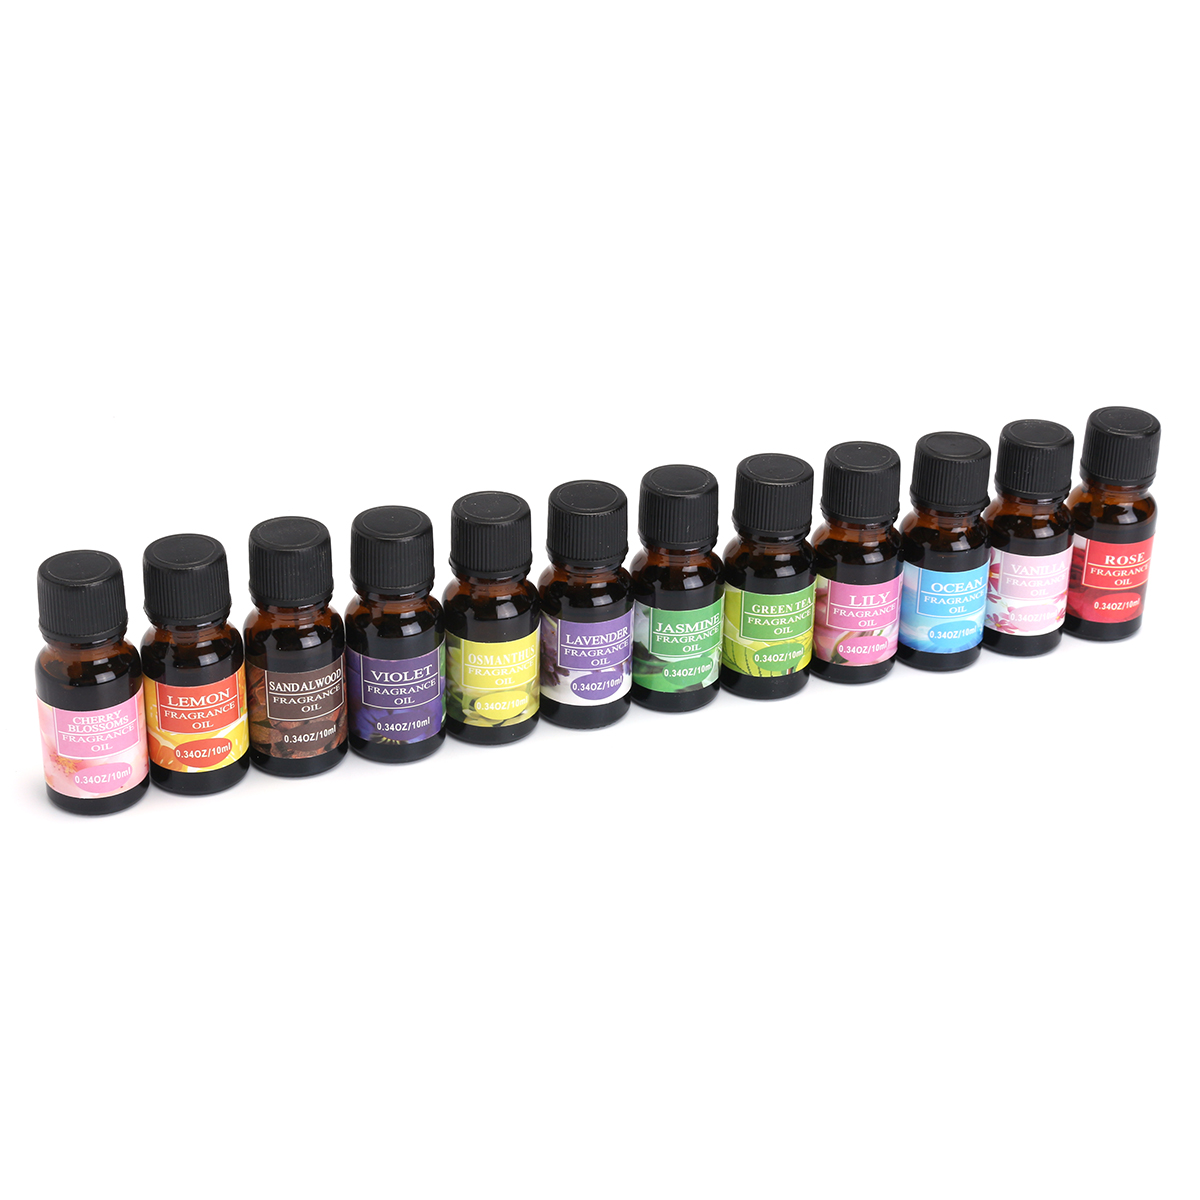 12pcs Water Soluble Essential Oils Diffuser Aromatherapy Fragrance Aroma Spa Relieve Fatigue